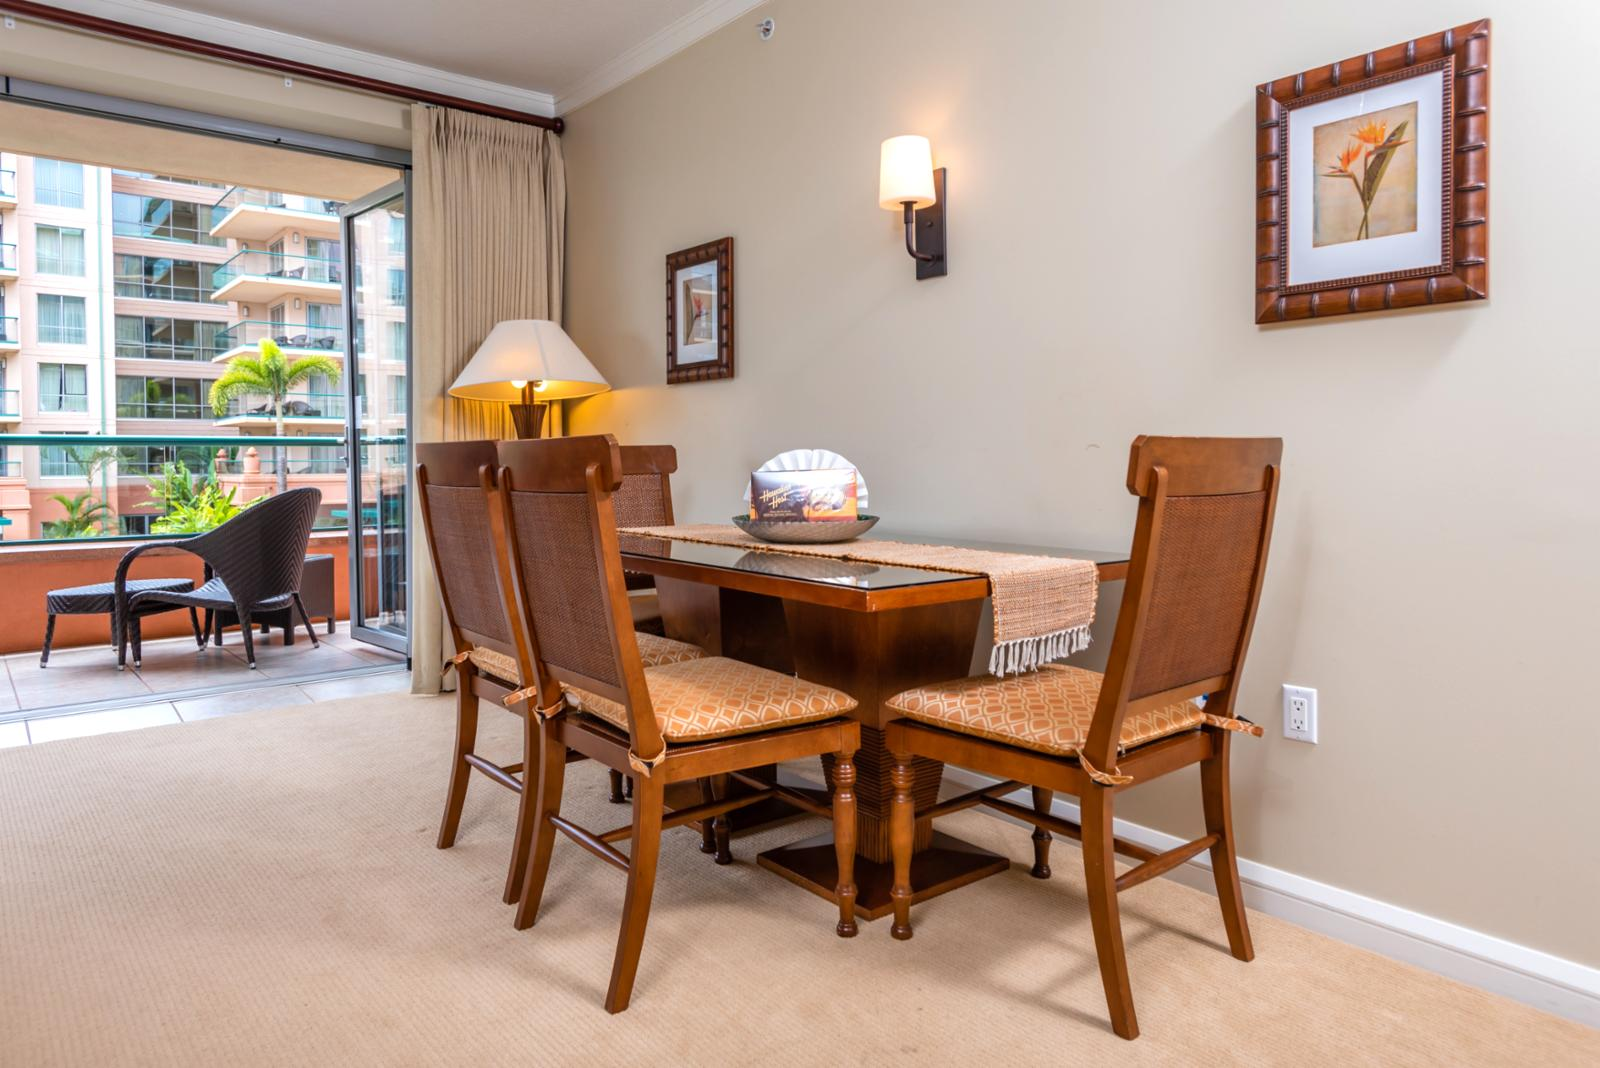 Formal dining room table for 4 showing open entry to balcony